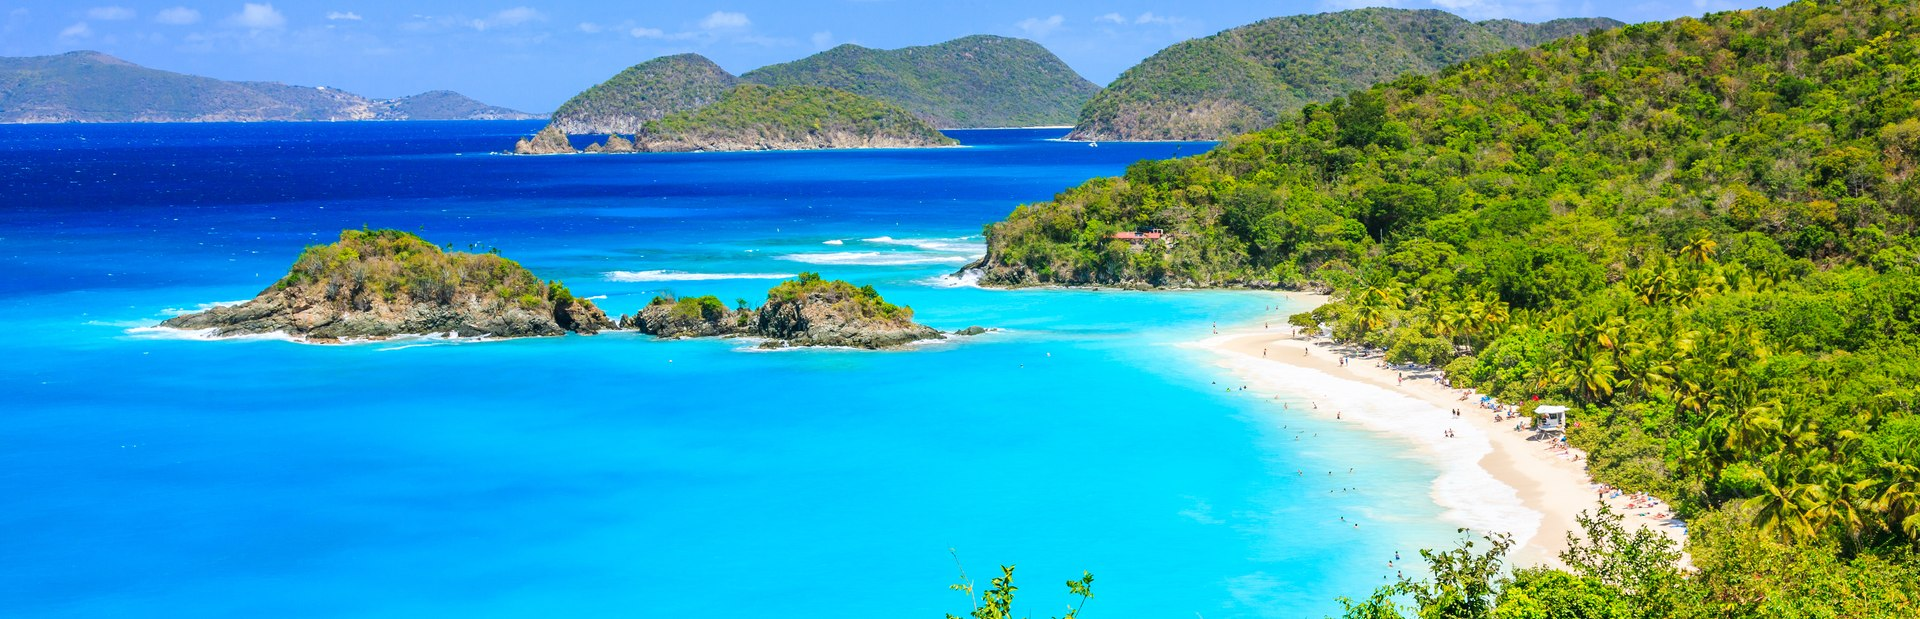 US Virgin Islands inspiration and tips